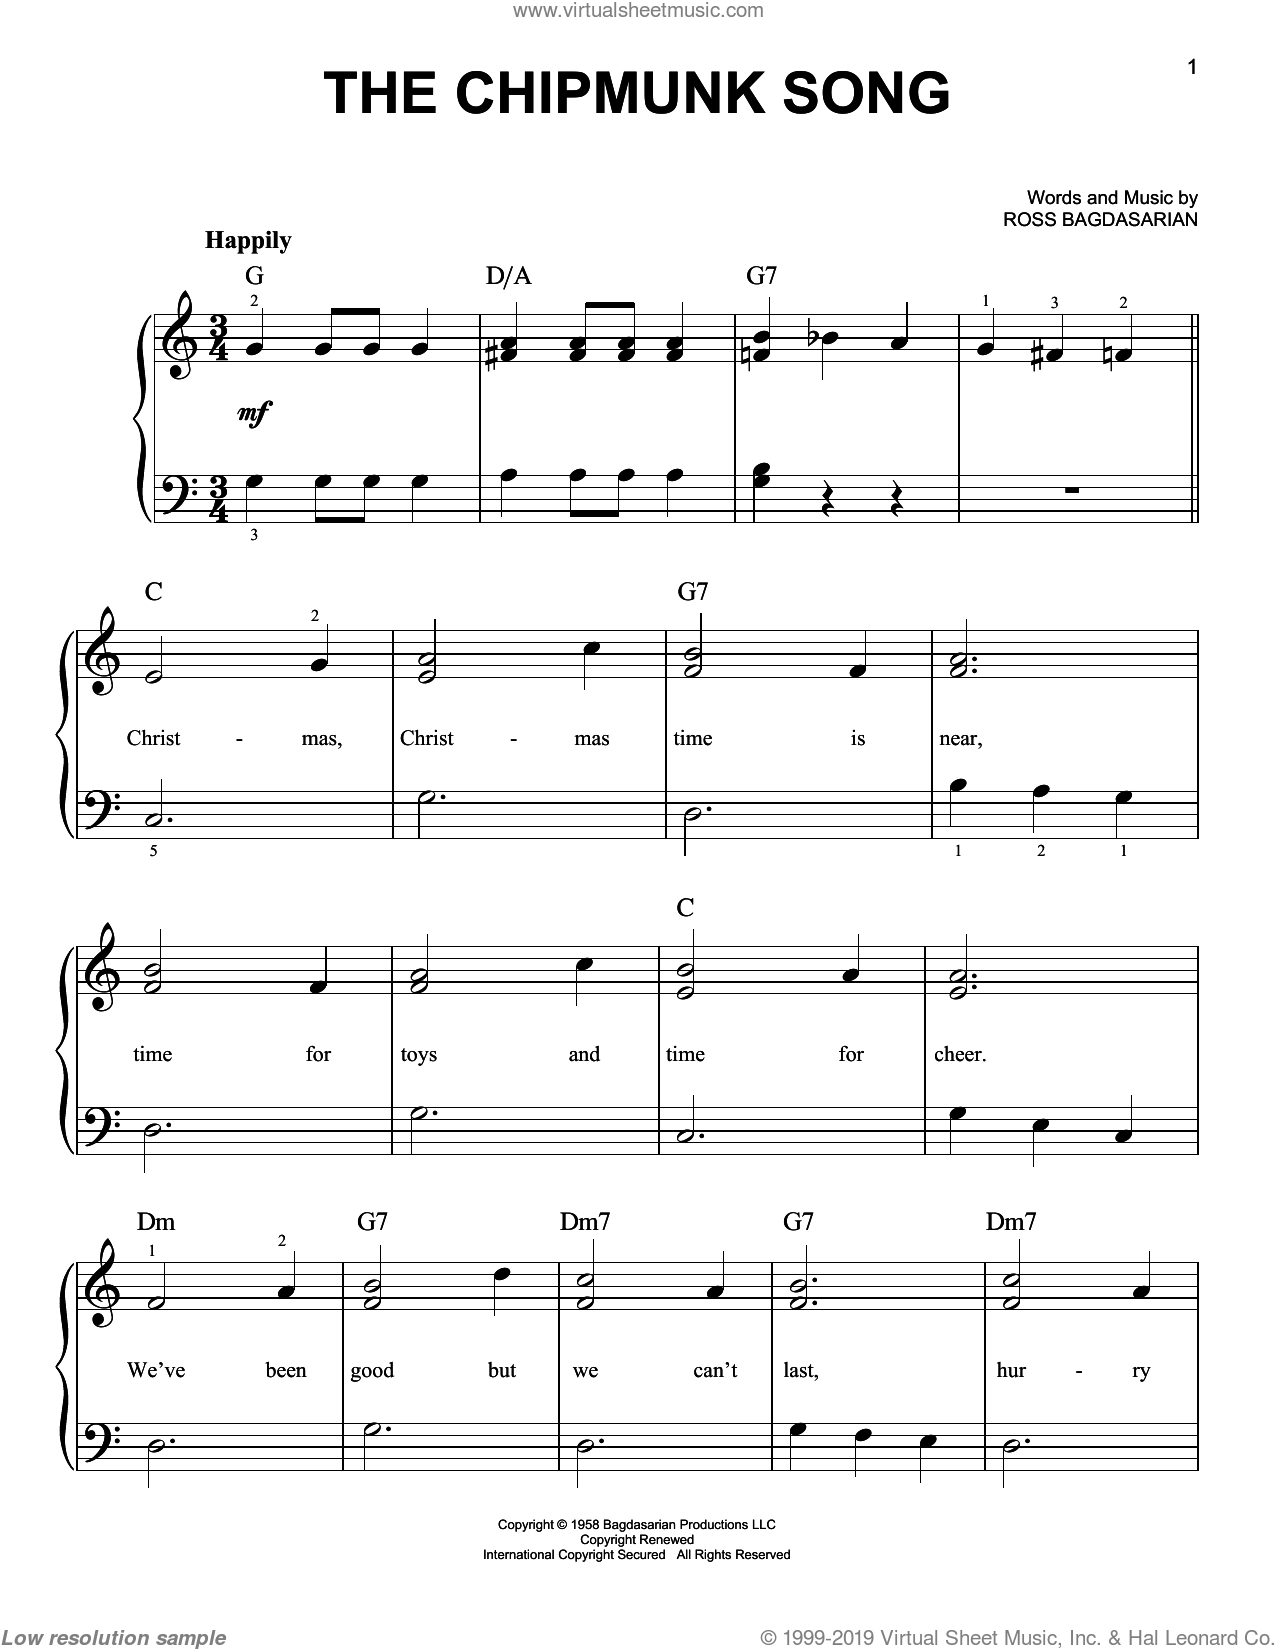 The Chipmunk Song sheet music for piano solo by Alvin And The Chipmunks and Ross Bagdasarian, beginner skill level